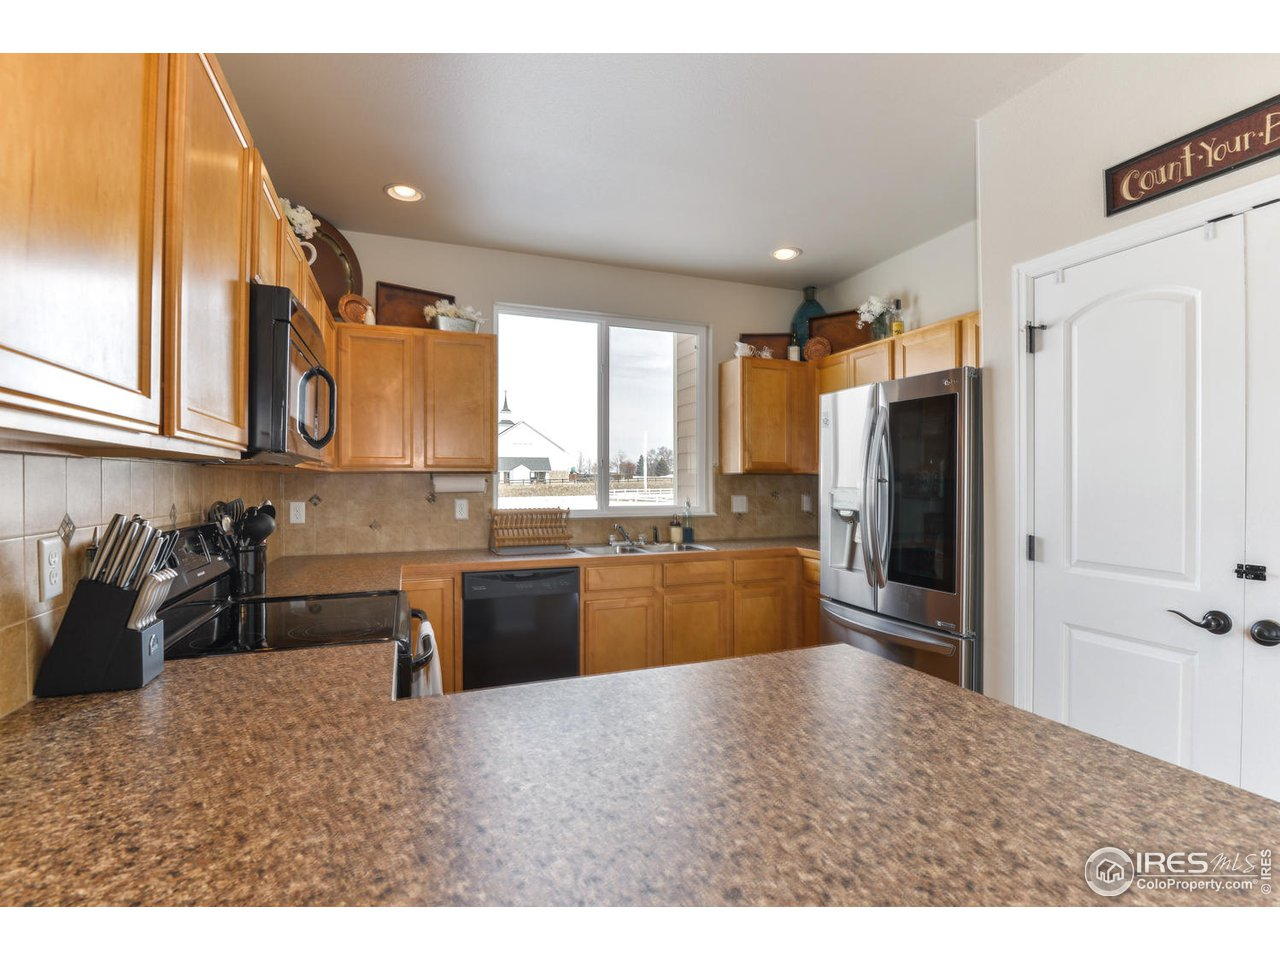 Large, open kitchen with tons of counter space